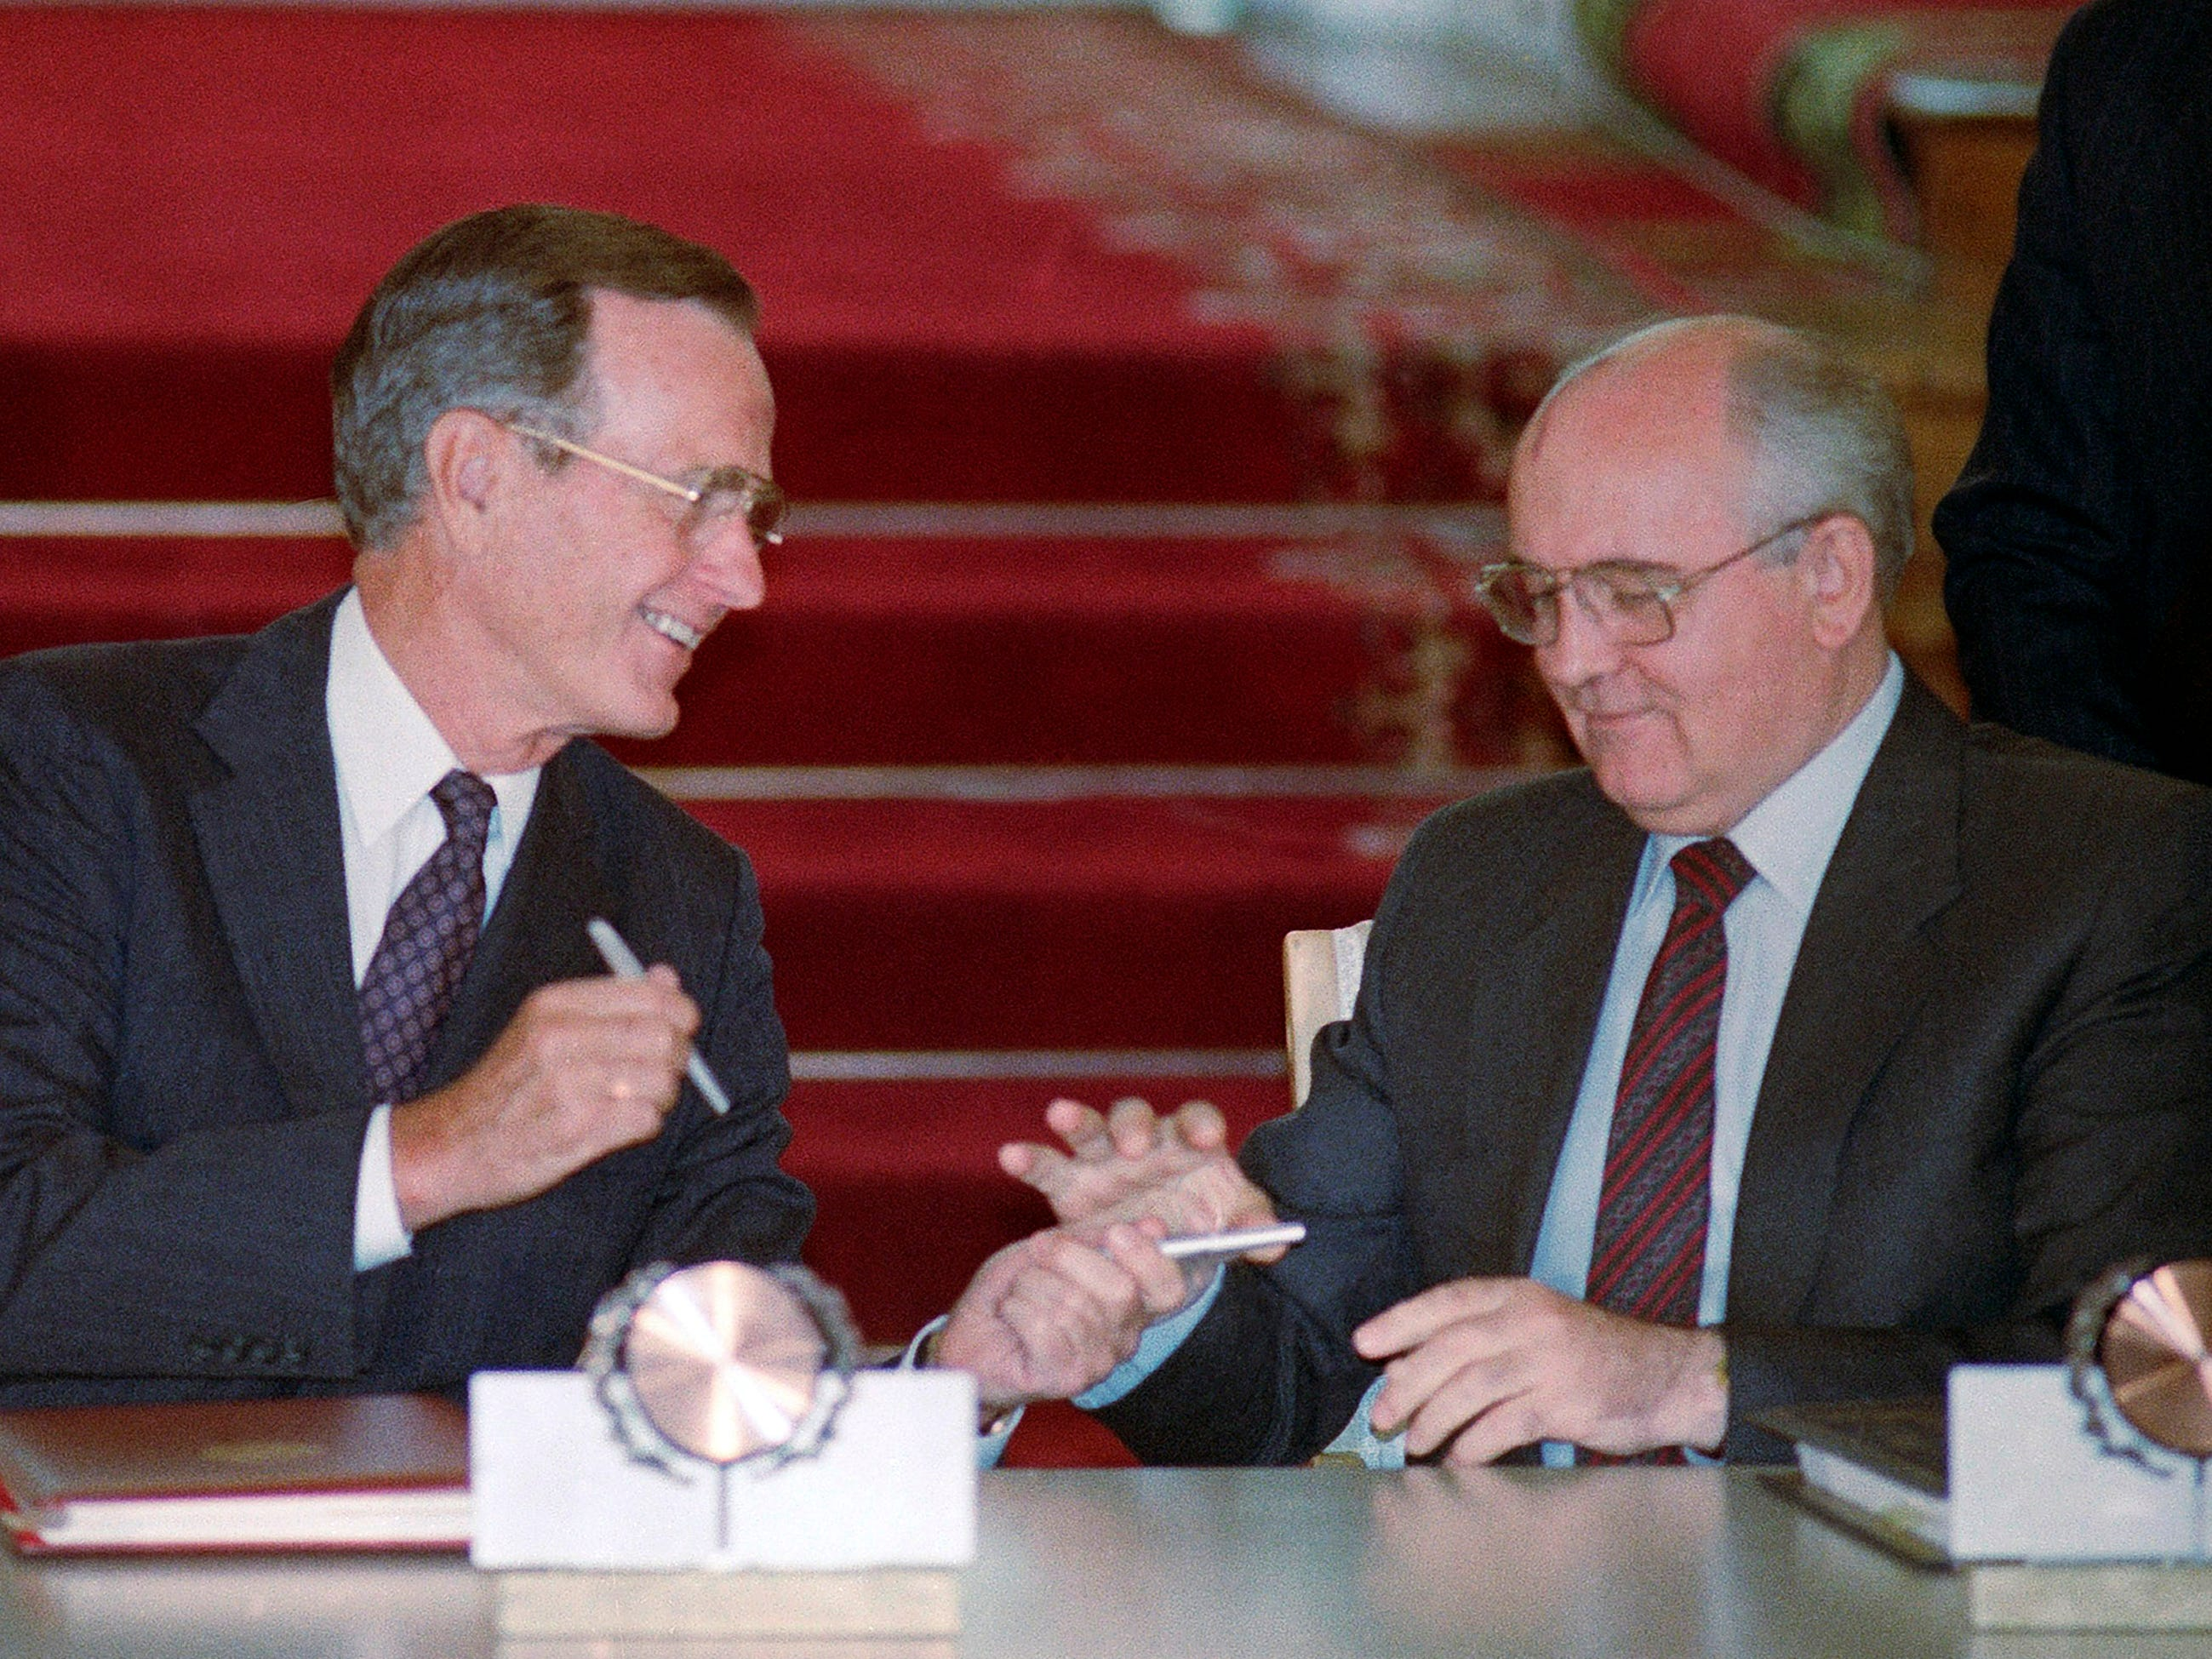 U.S. President George H. Bush and Soviet President Mikhail Gorbachev exchange pens after signing the START arms reduction treaty in the Kremli in Moscow on Aug. 1, 1991.